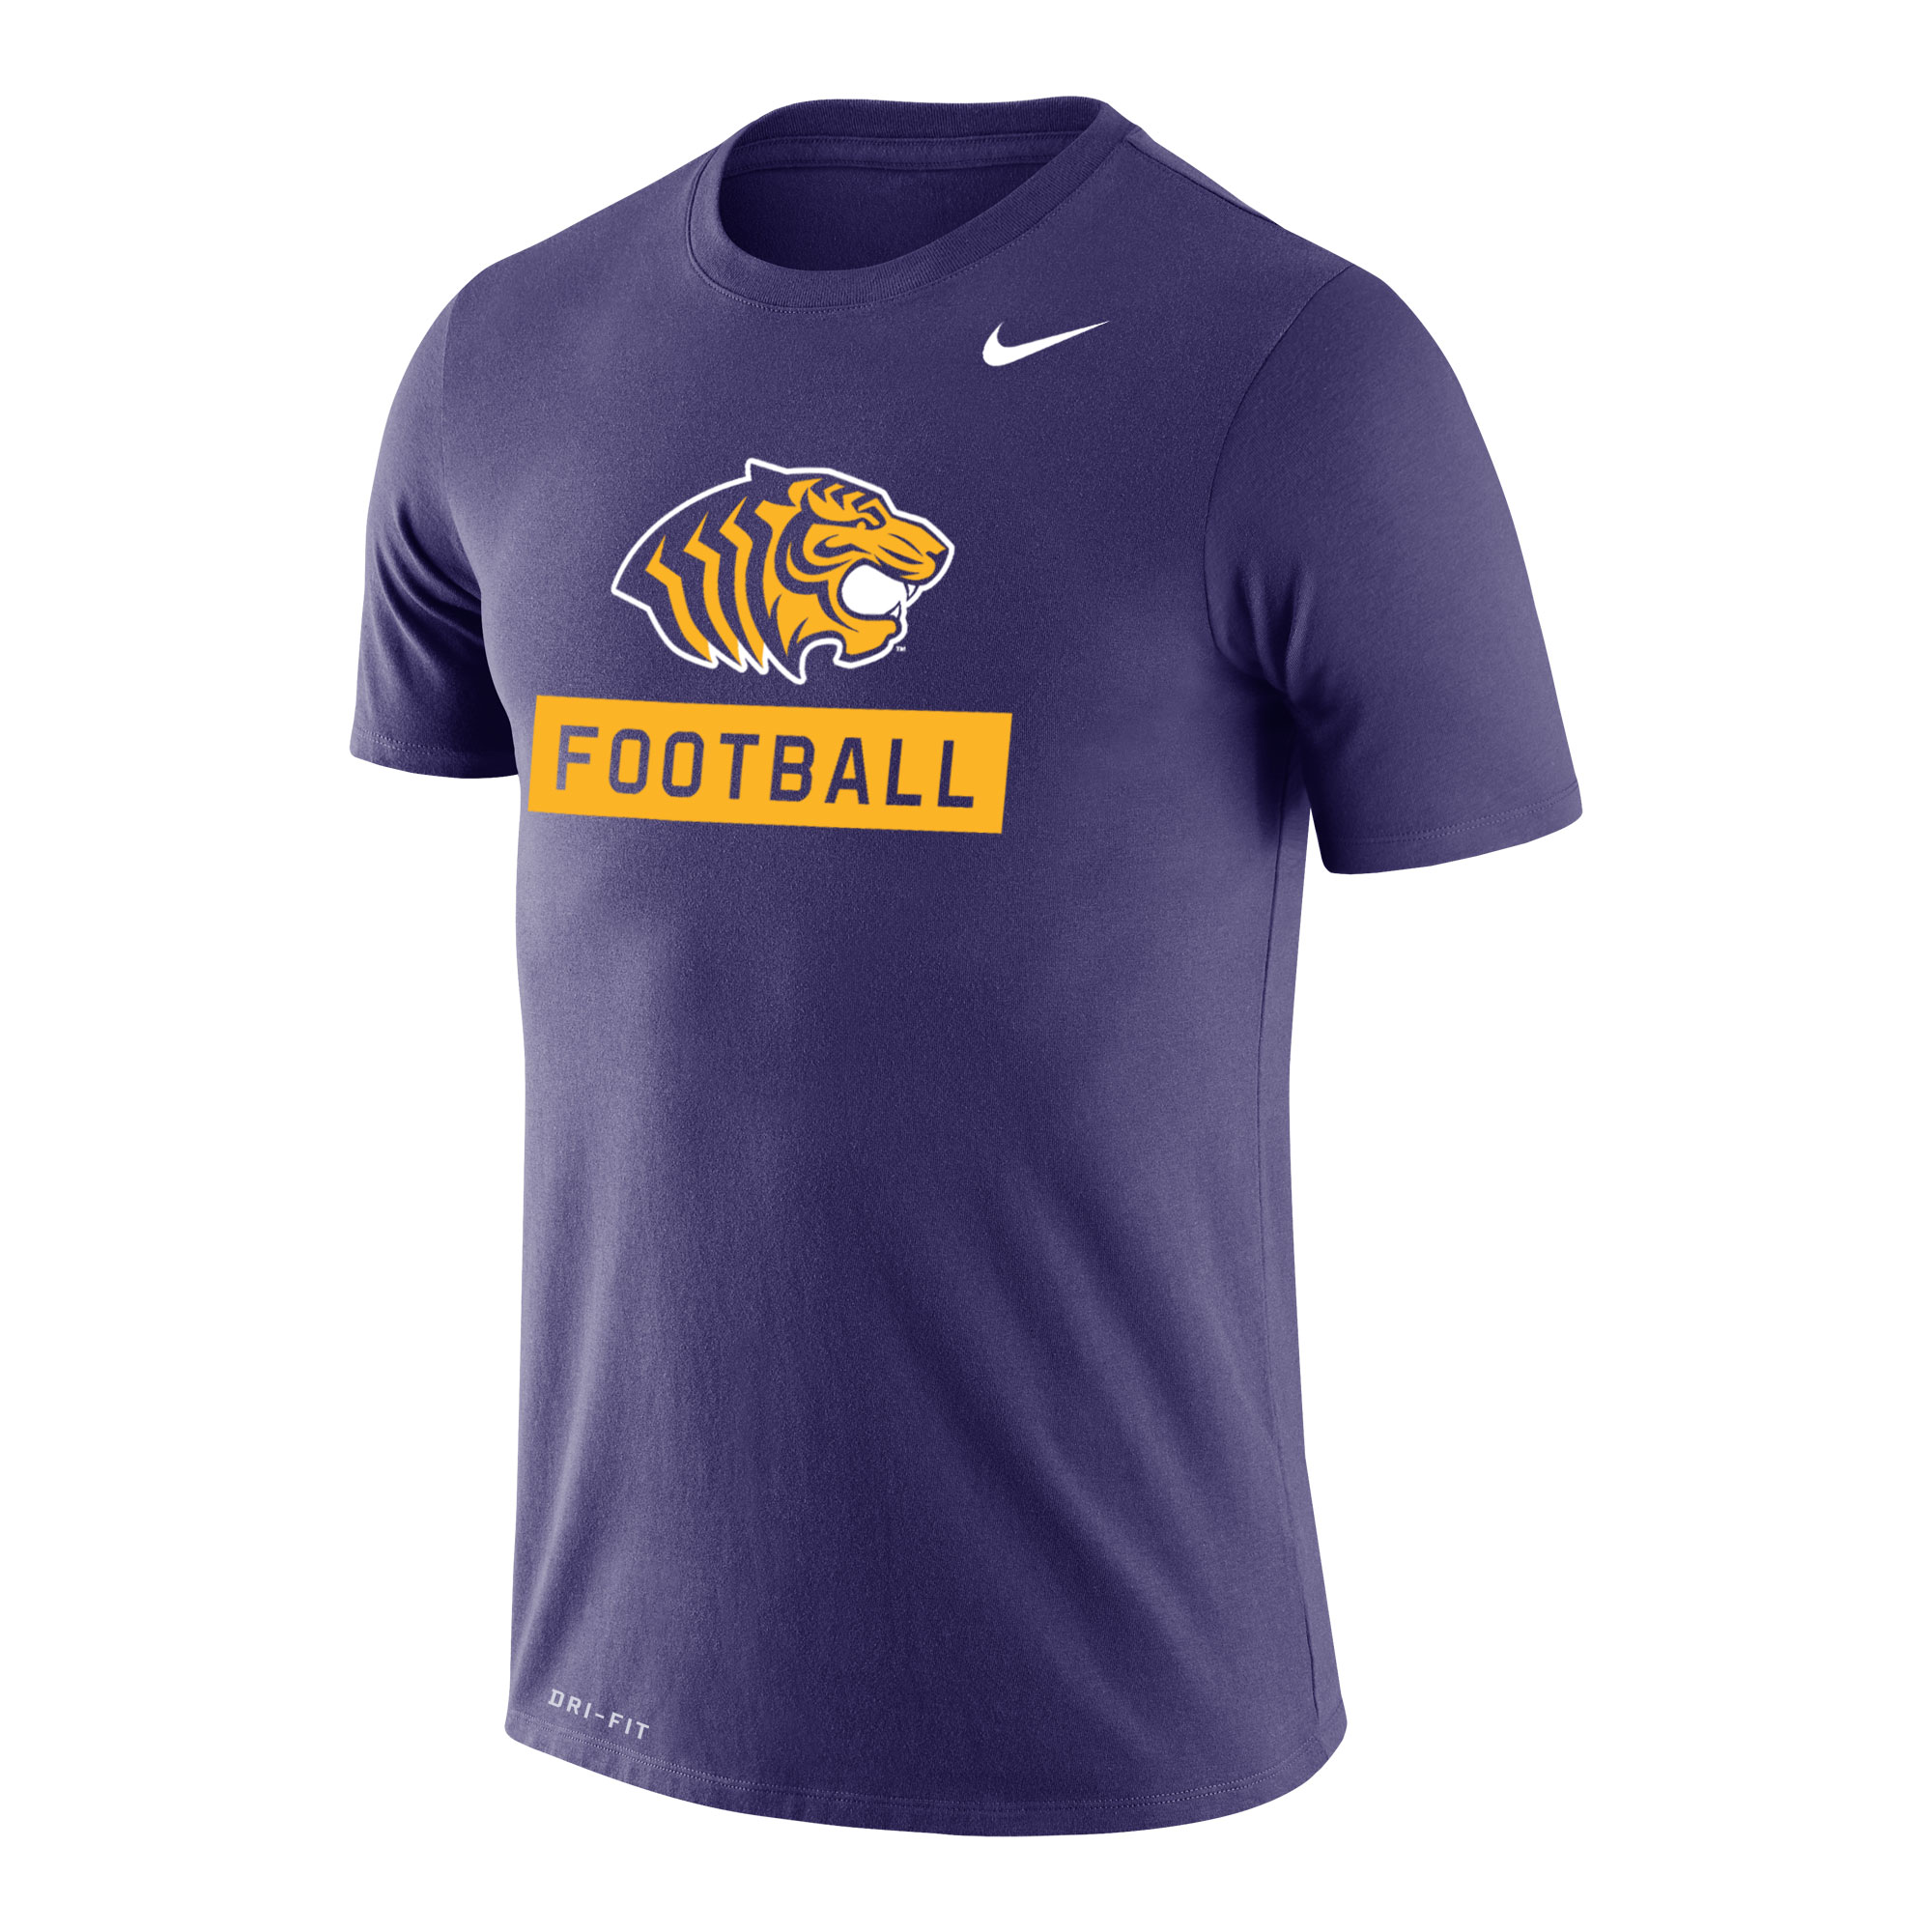 TIGER FOOTBALL NIKE LEGEND SS TEE